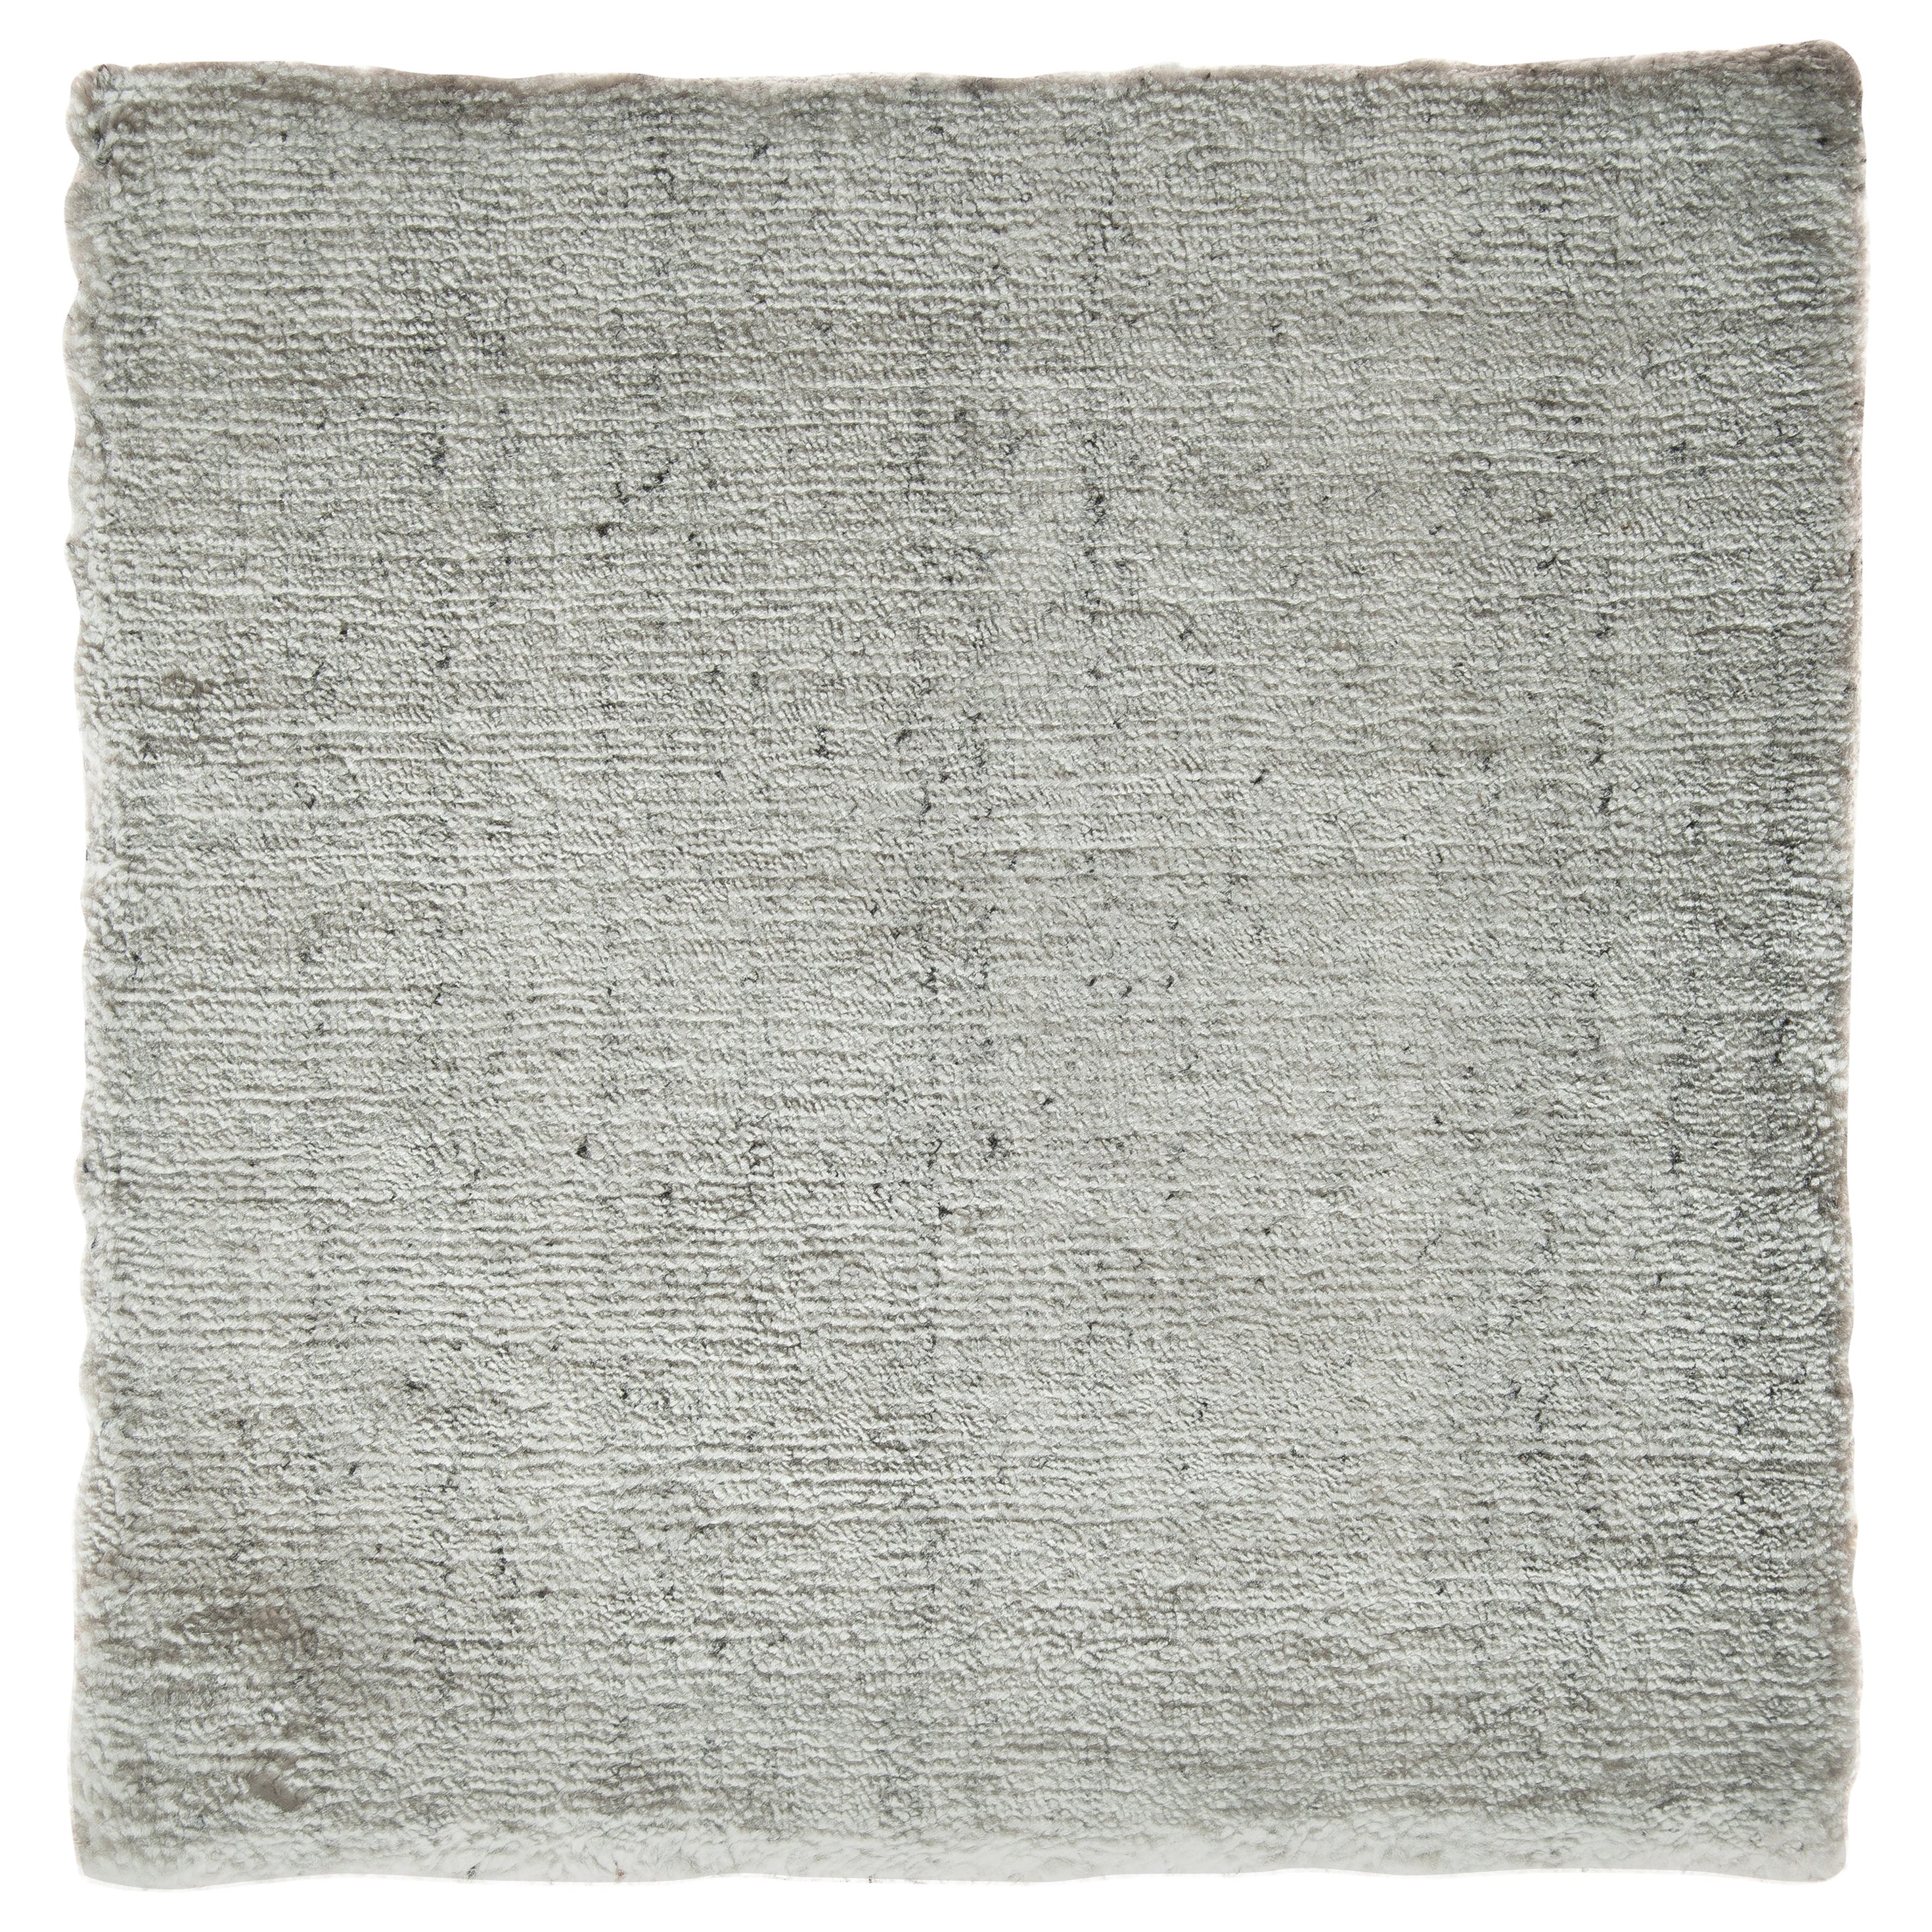 White and Silver Speckled Bamboo Silk Solid Hand-Loomed Contemporary Rug